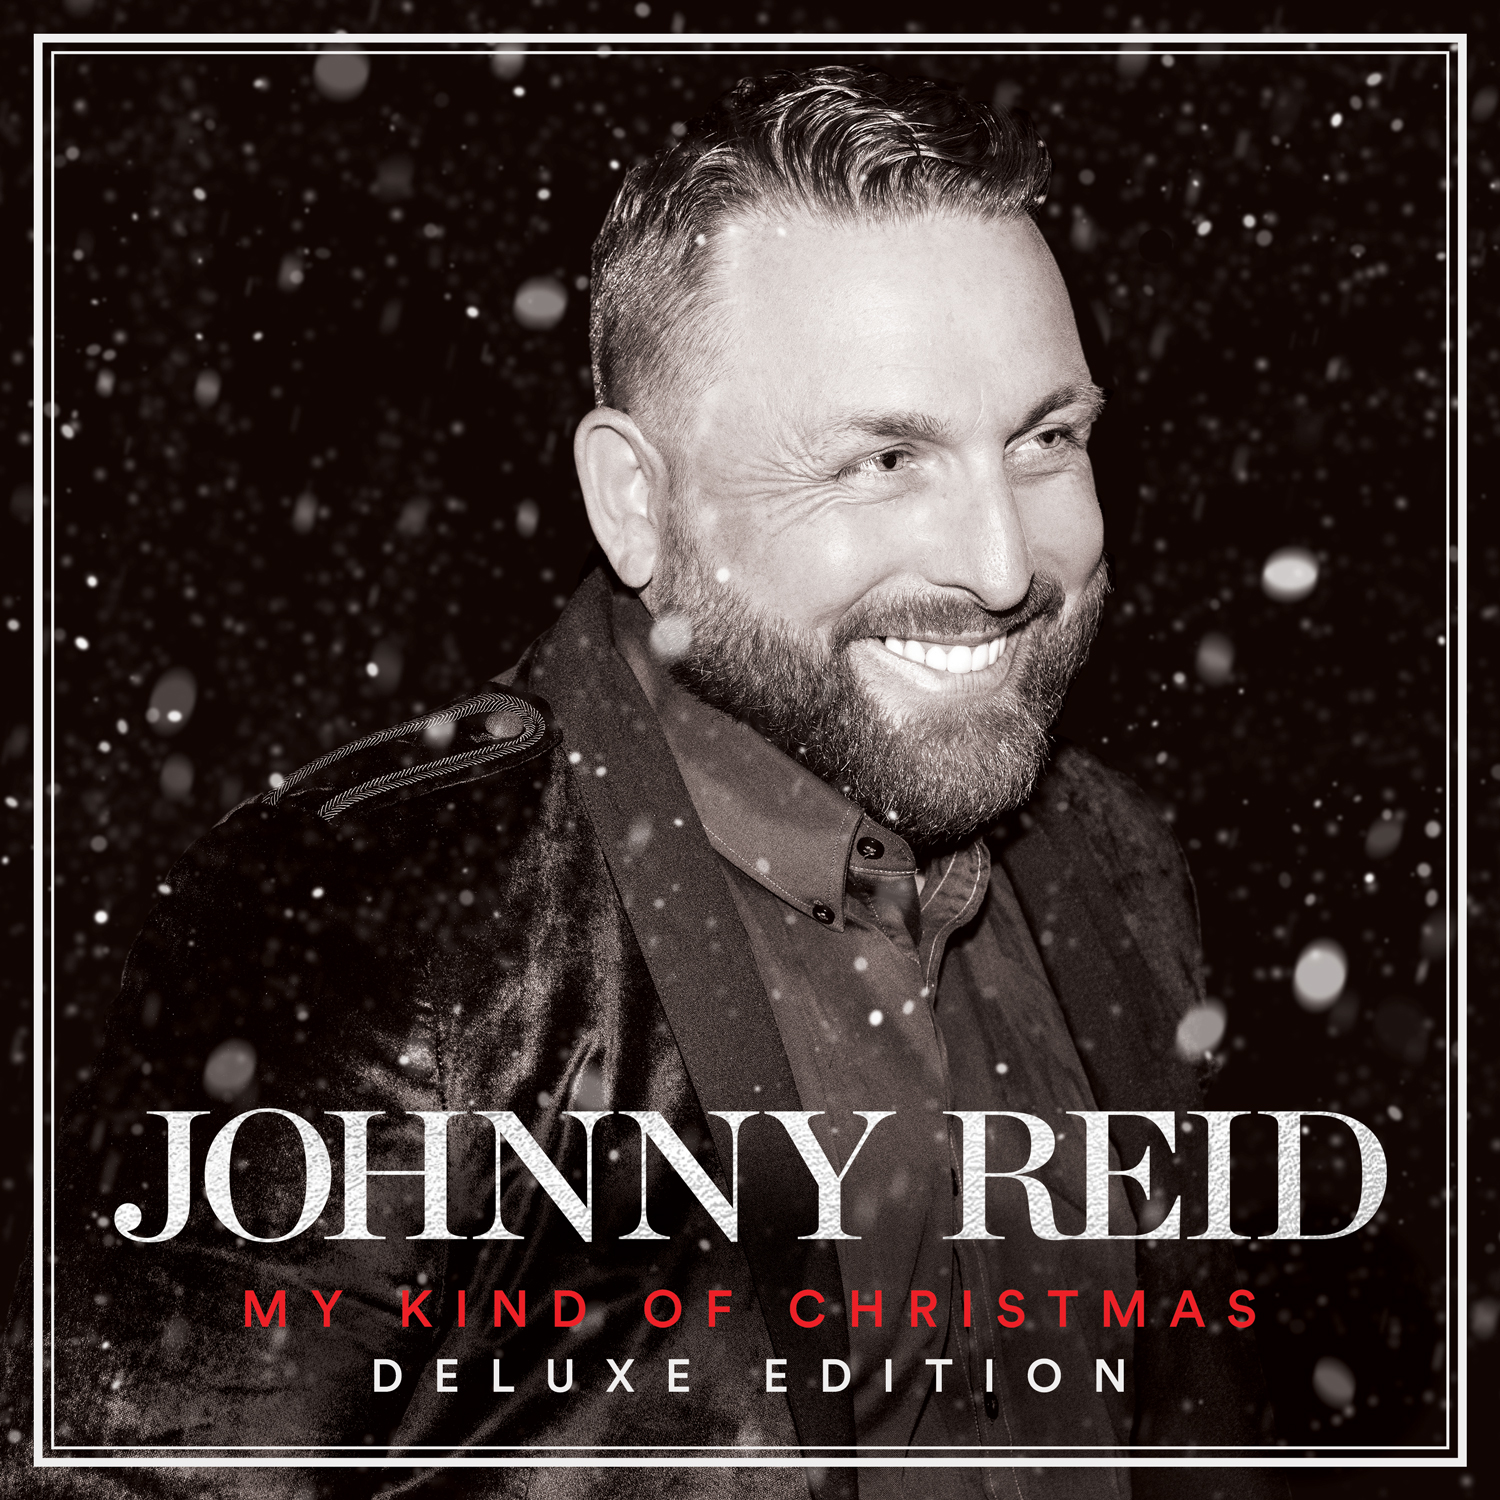 Johnny Reid Set To Release My Kind Of Christmas Deluxe Edition Digitally On November 20th